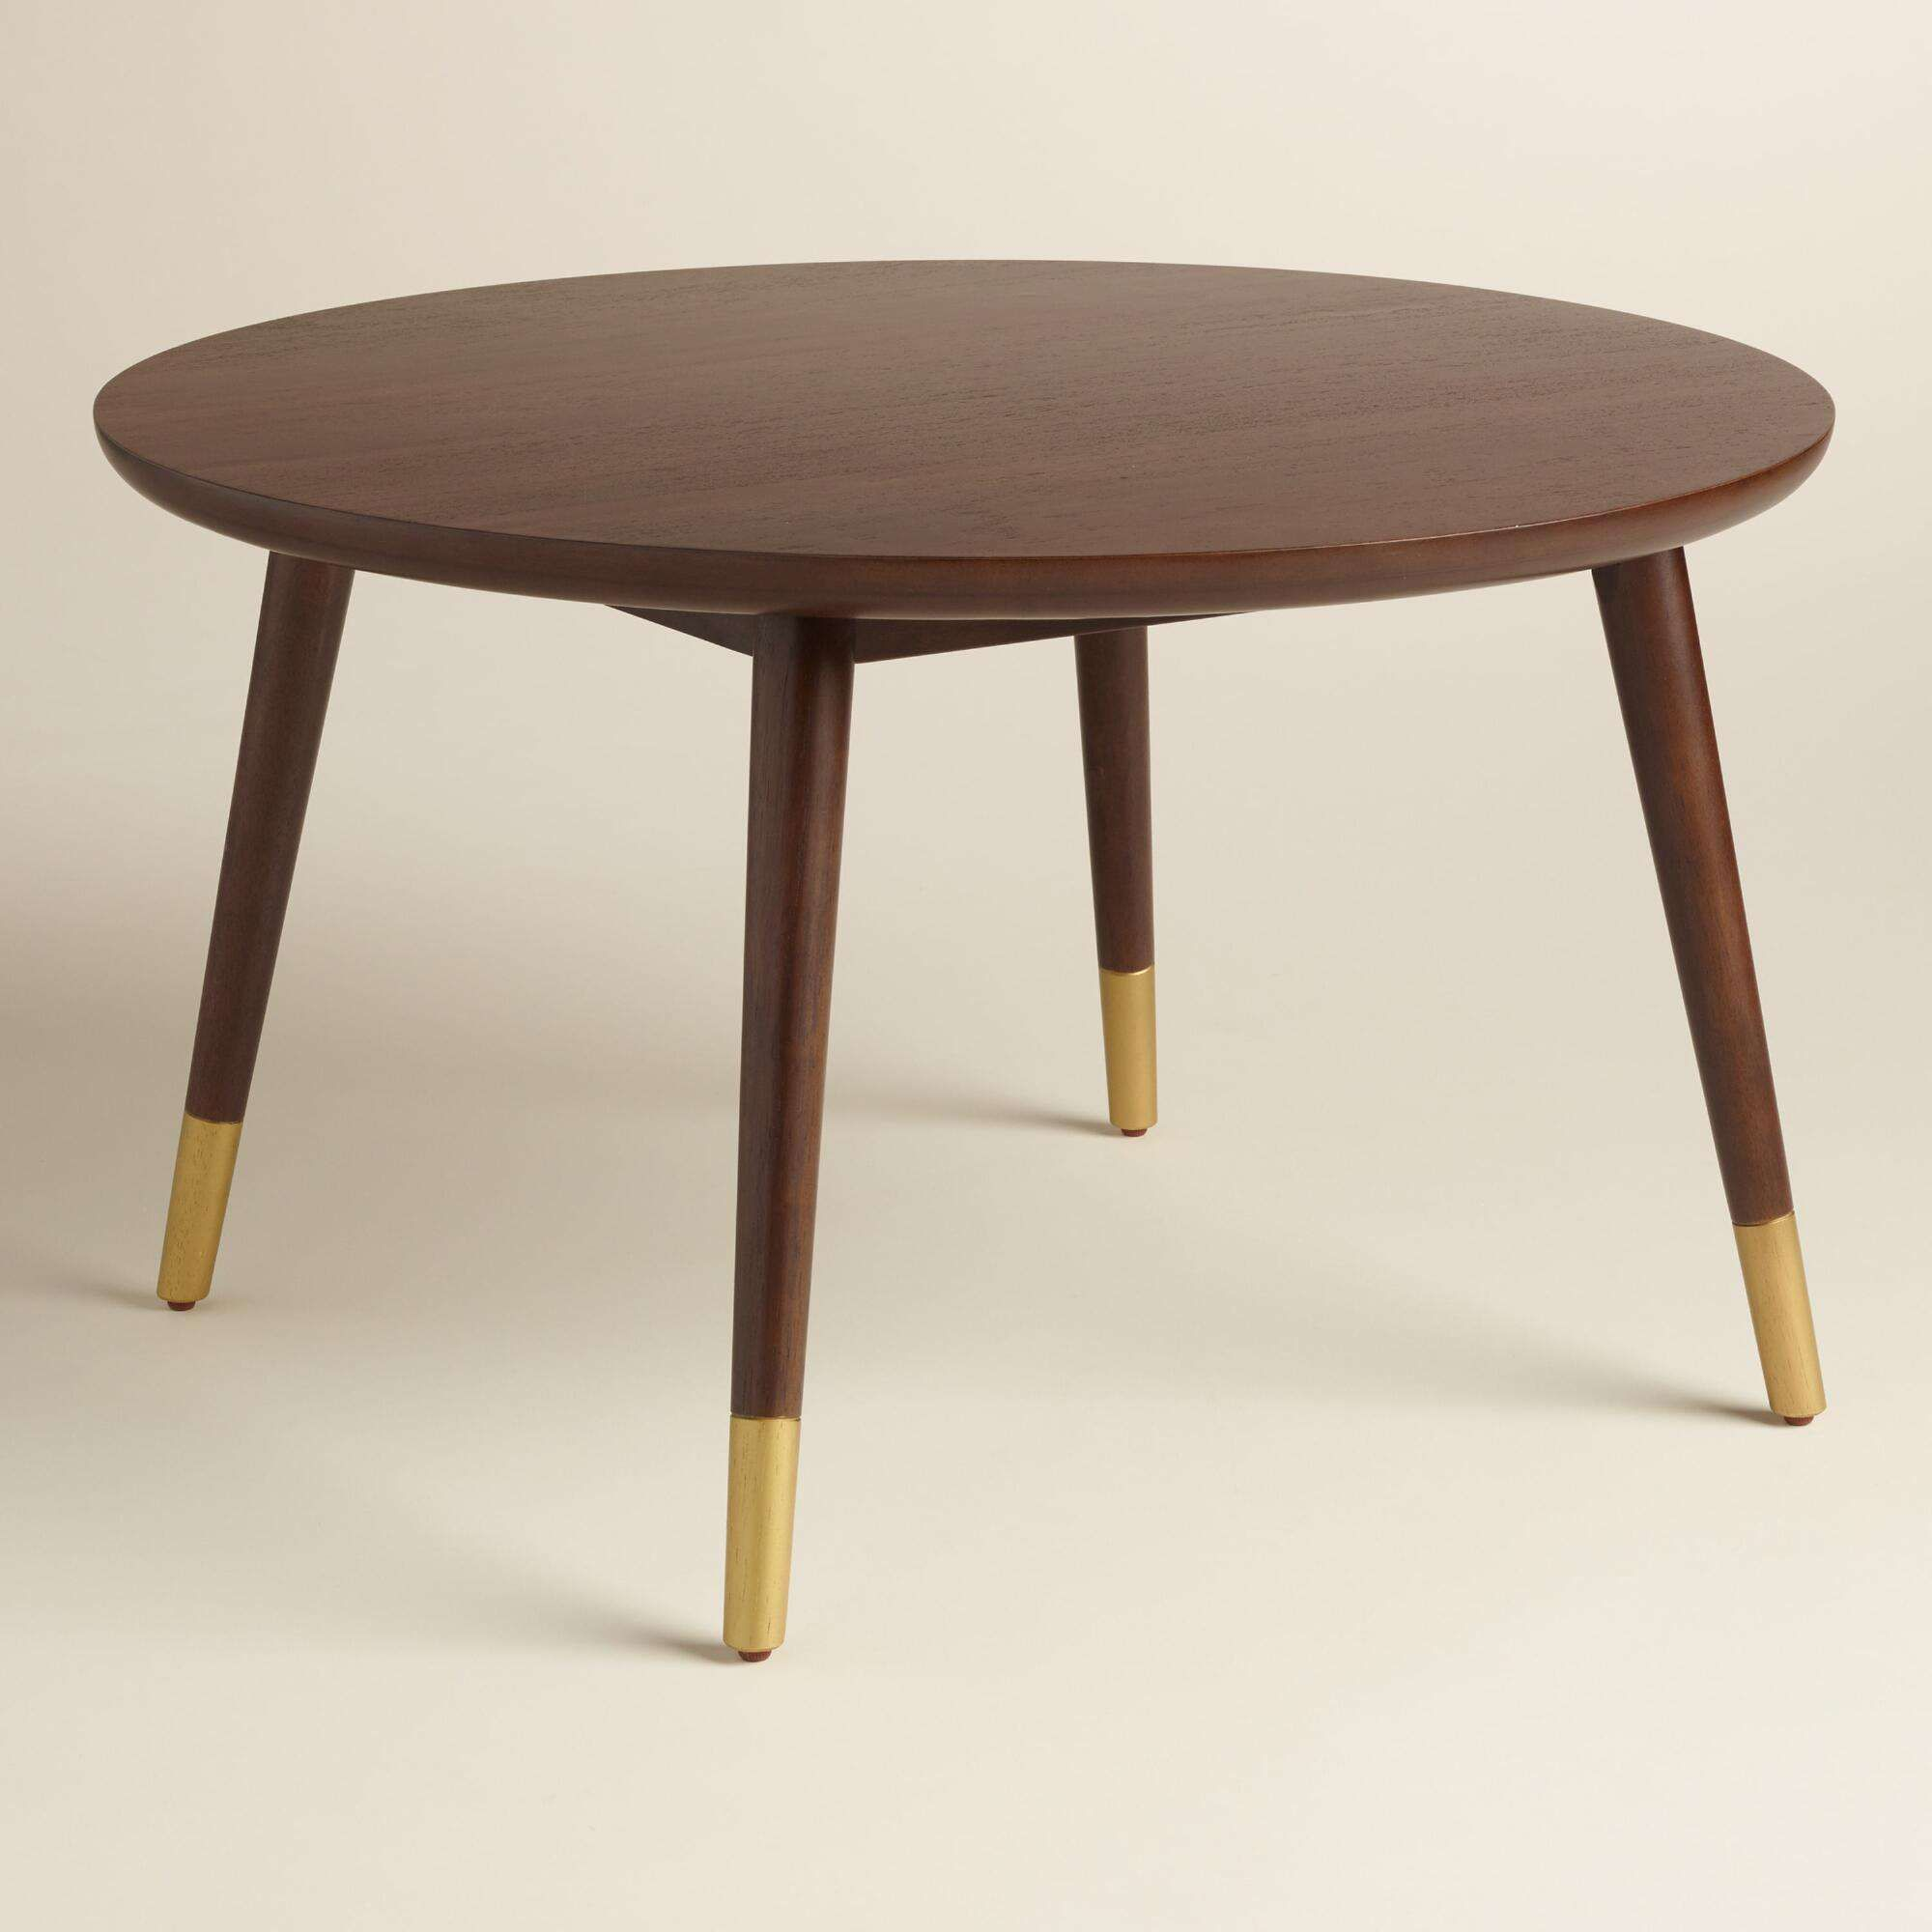 Mid Century Modern Oval Coffee Table Download Mid Century Modern Round Coffee Round Coffee Table Modern Mid Century Modern Coffee Table Round Wood Coffee Table [ 2000 x 2000 Pixel ]